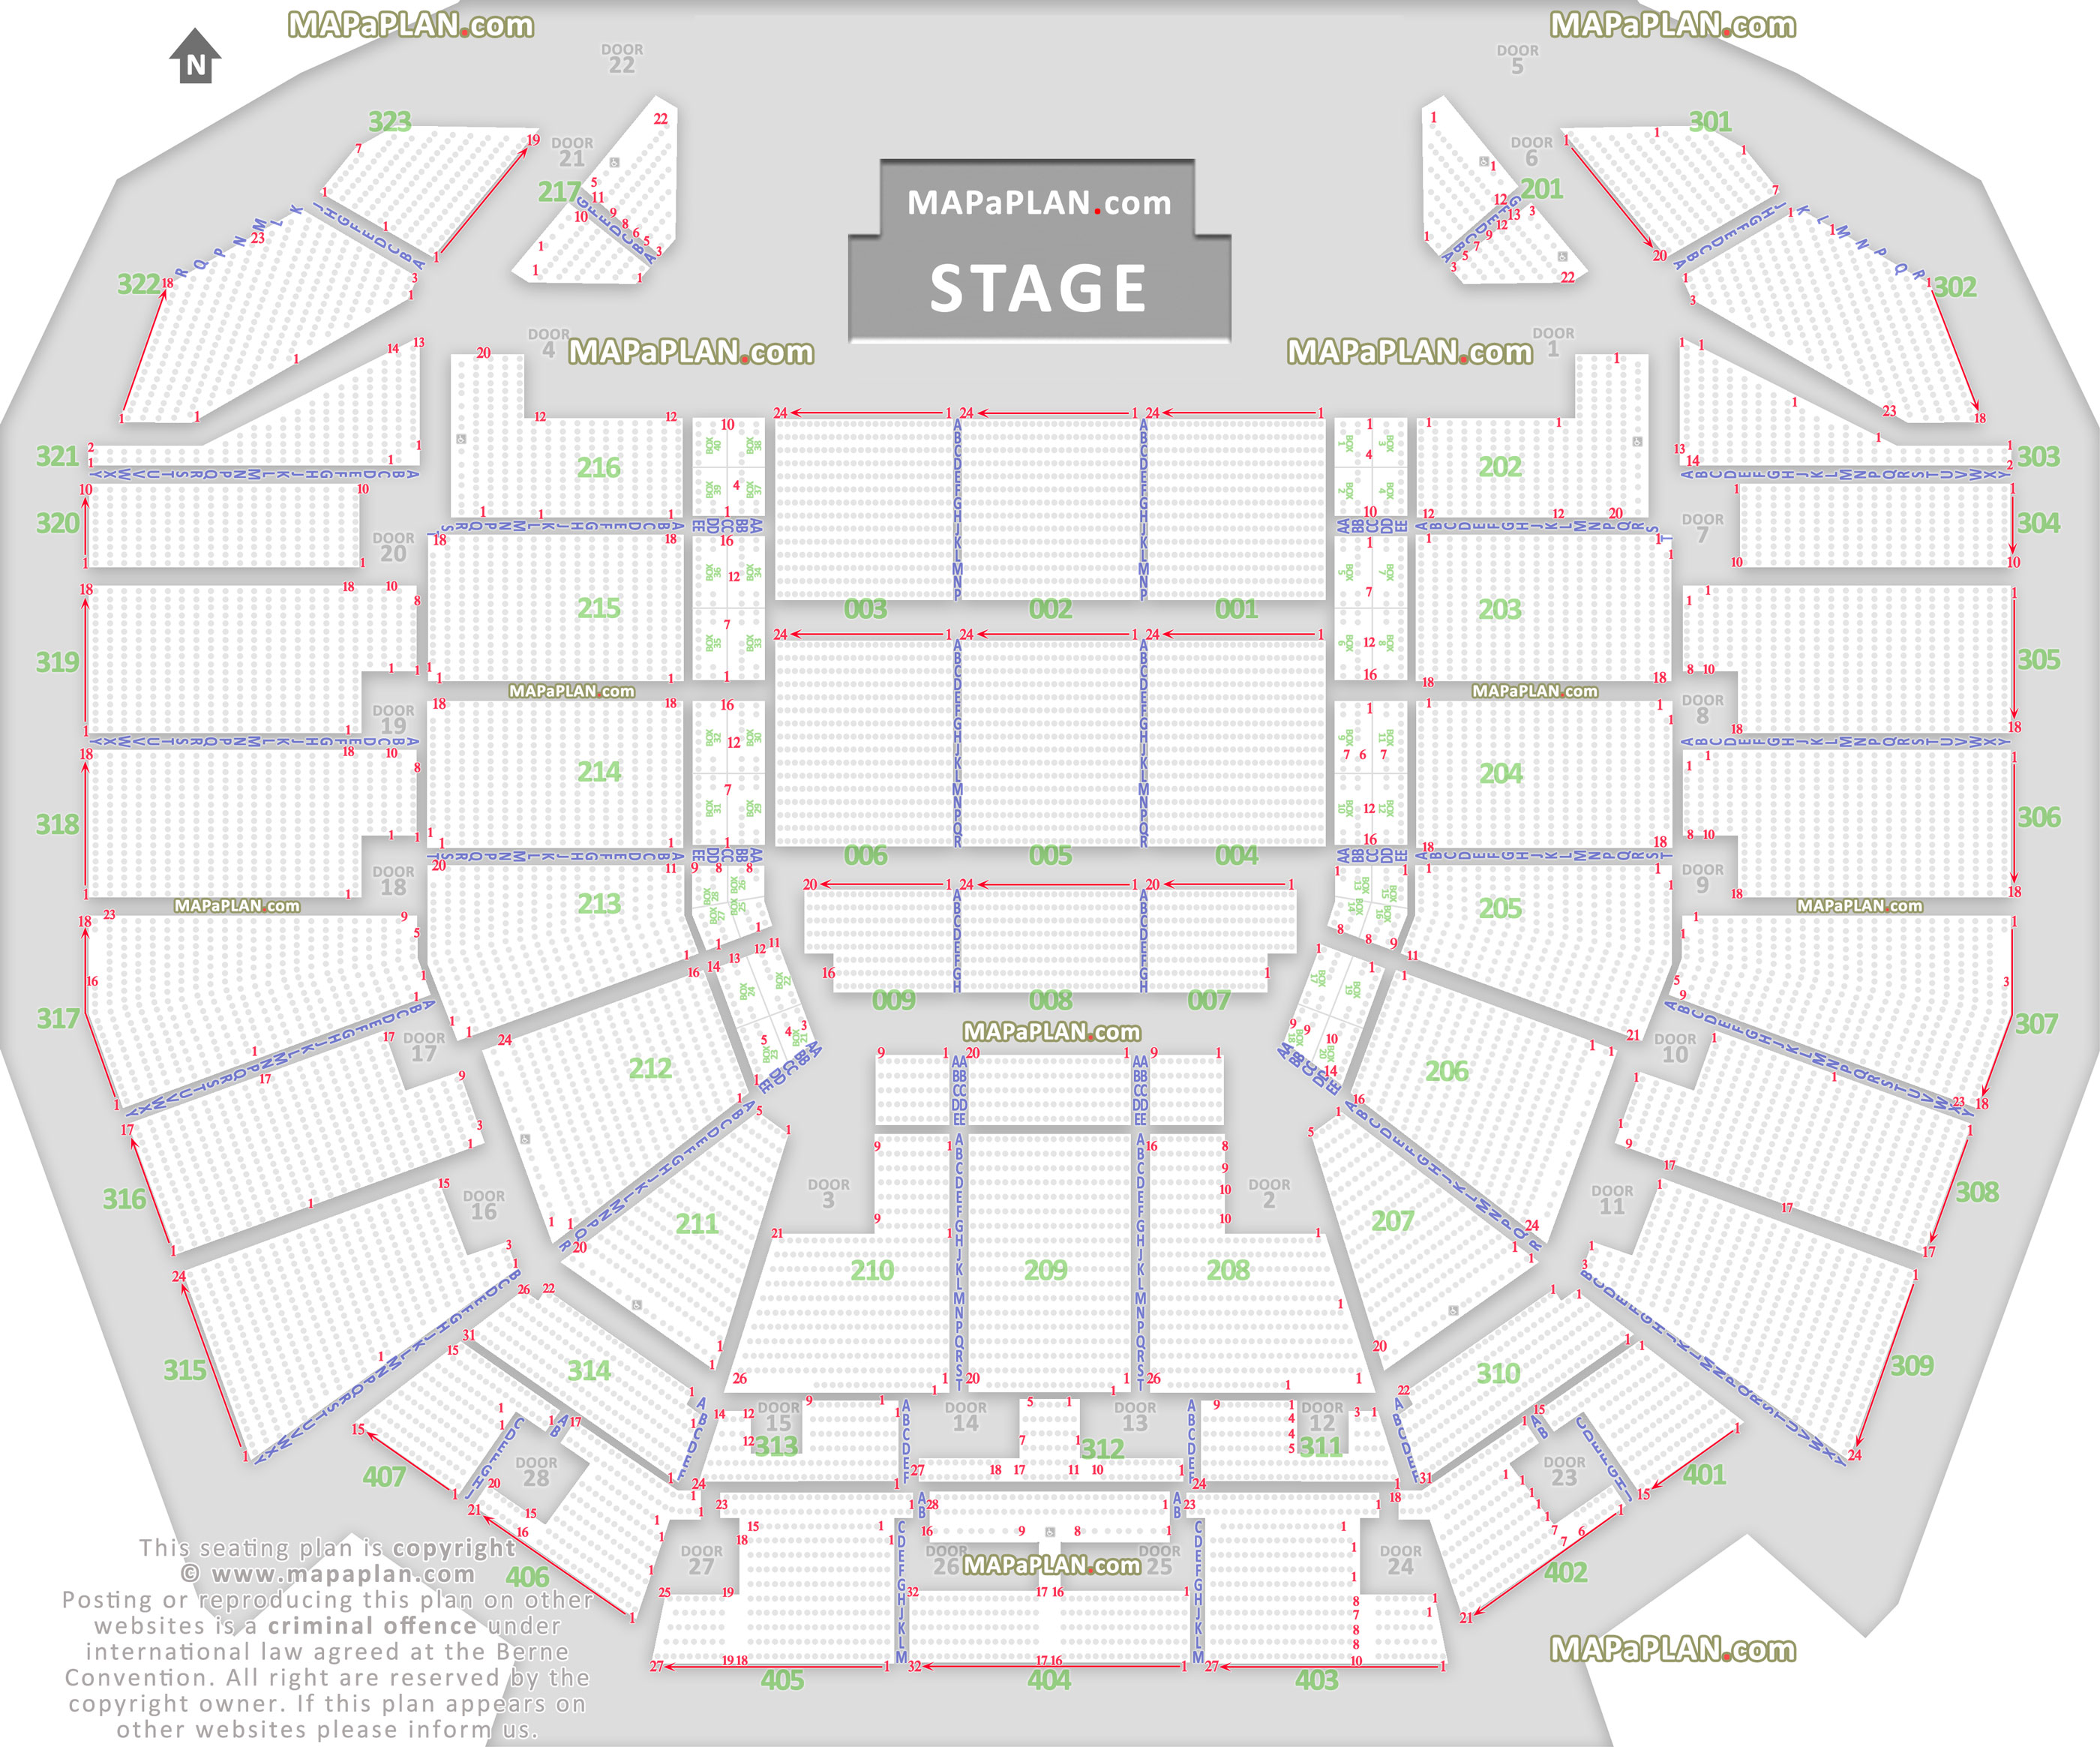 Allstate Arena Seating Map With Rows   Awesome Home on oracle arena map, greensboro coliseum complex, arco arena map, chicago wolves, wintrust arena, staples center, bmo harris bank center map, nassau veterans memorial coliseum, talking stick resort arena map, valley view casino center, little caesars arena, smoothie king center map, soldier field map, oracle arena, nrg stadium map, sprint arena map, quicken loans arena, wells fargo center, ford center map, sears centre arena map, joe louis arena, u.s. bank arena map, scottrade center, world arena map, td garden, jobing arena map, salinas sports complex map, germain arena map, levi's stadium, the palace of auburn hills map, gampel pavilion map, bankers life arena map, mandalay bay arena map, at&t center, xl center, united center, amalie arena map, honda center,